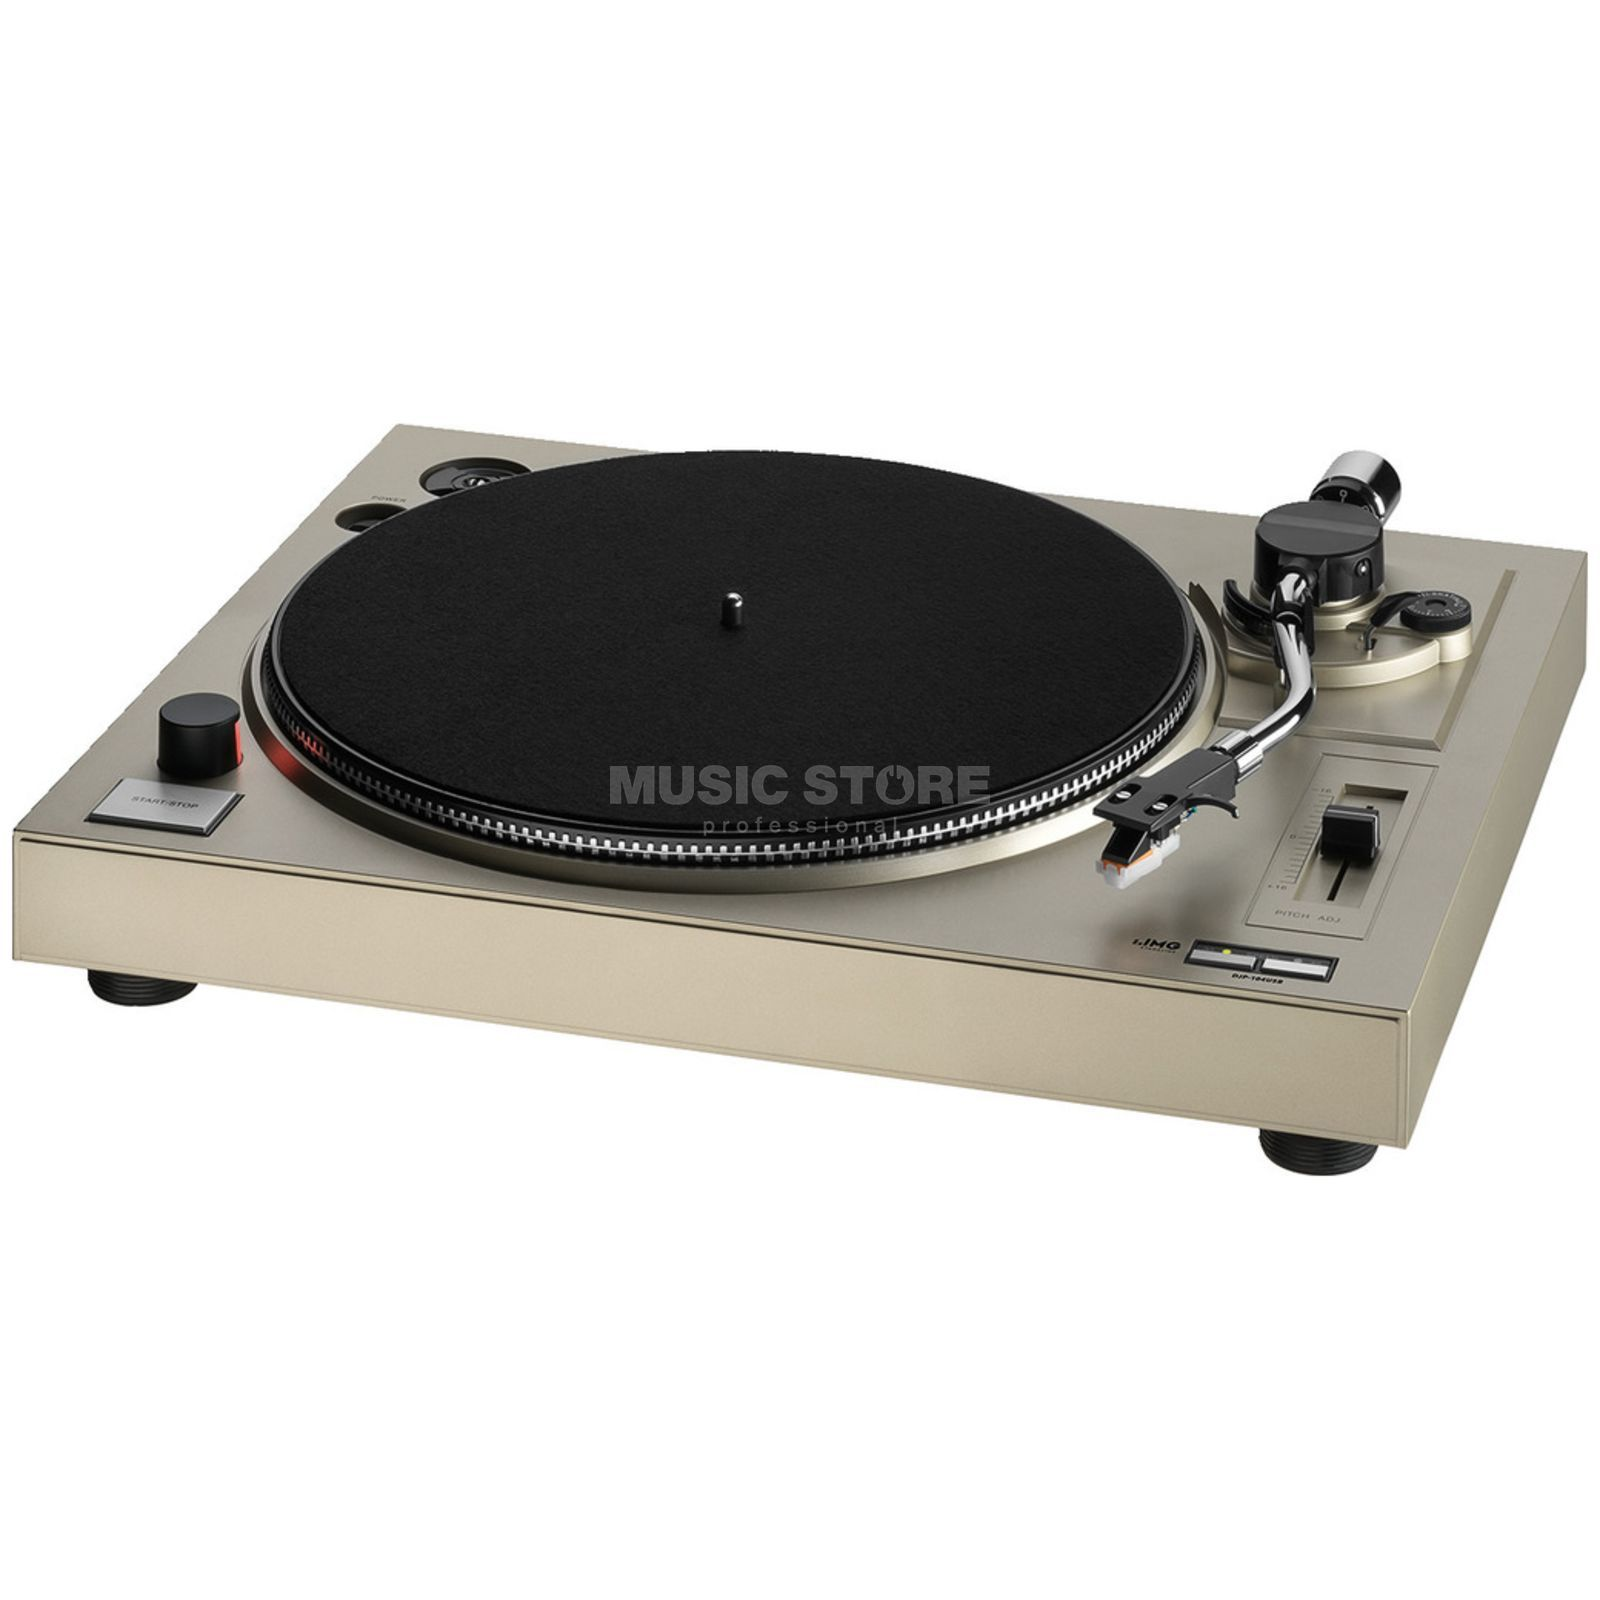 IMG STAGELINE DJP-104USB Turntable Изображение товара